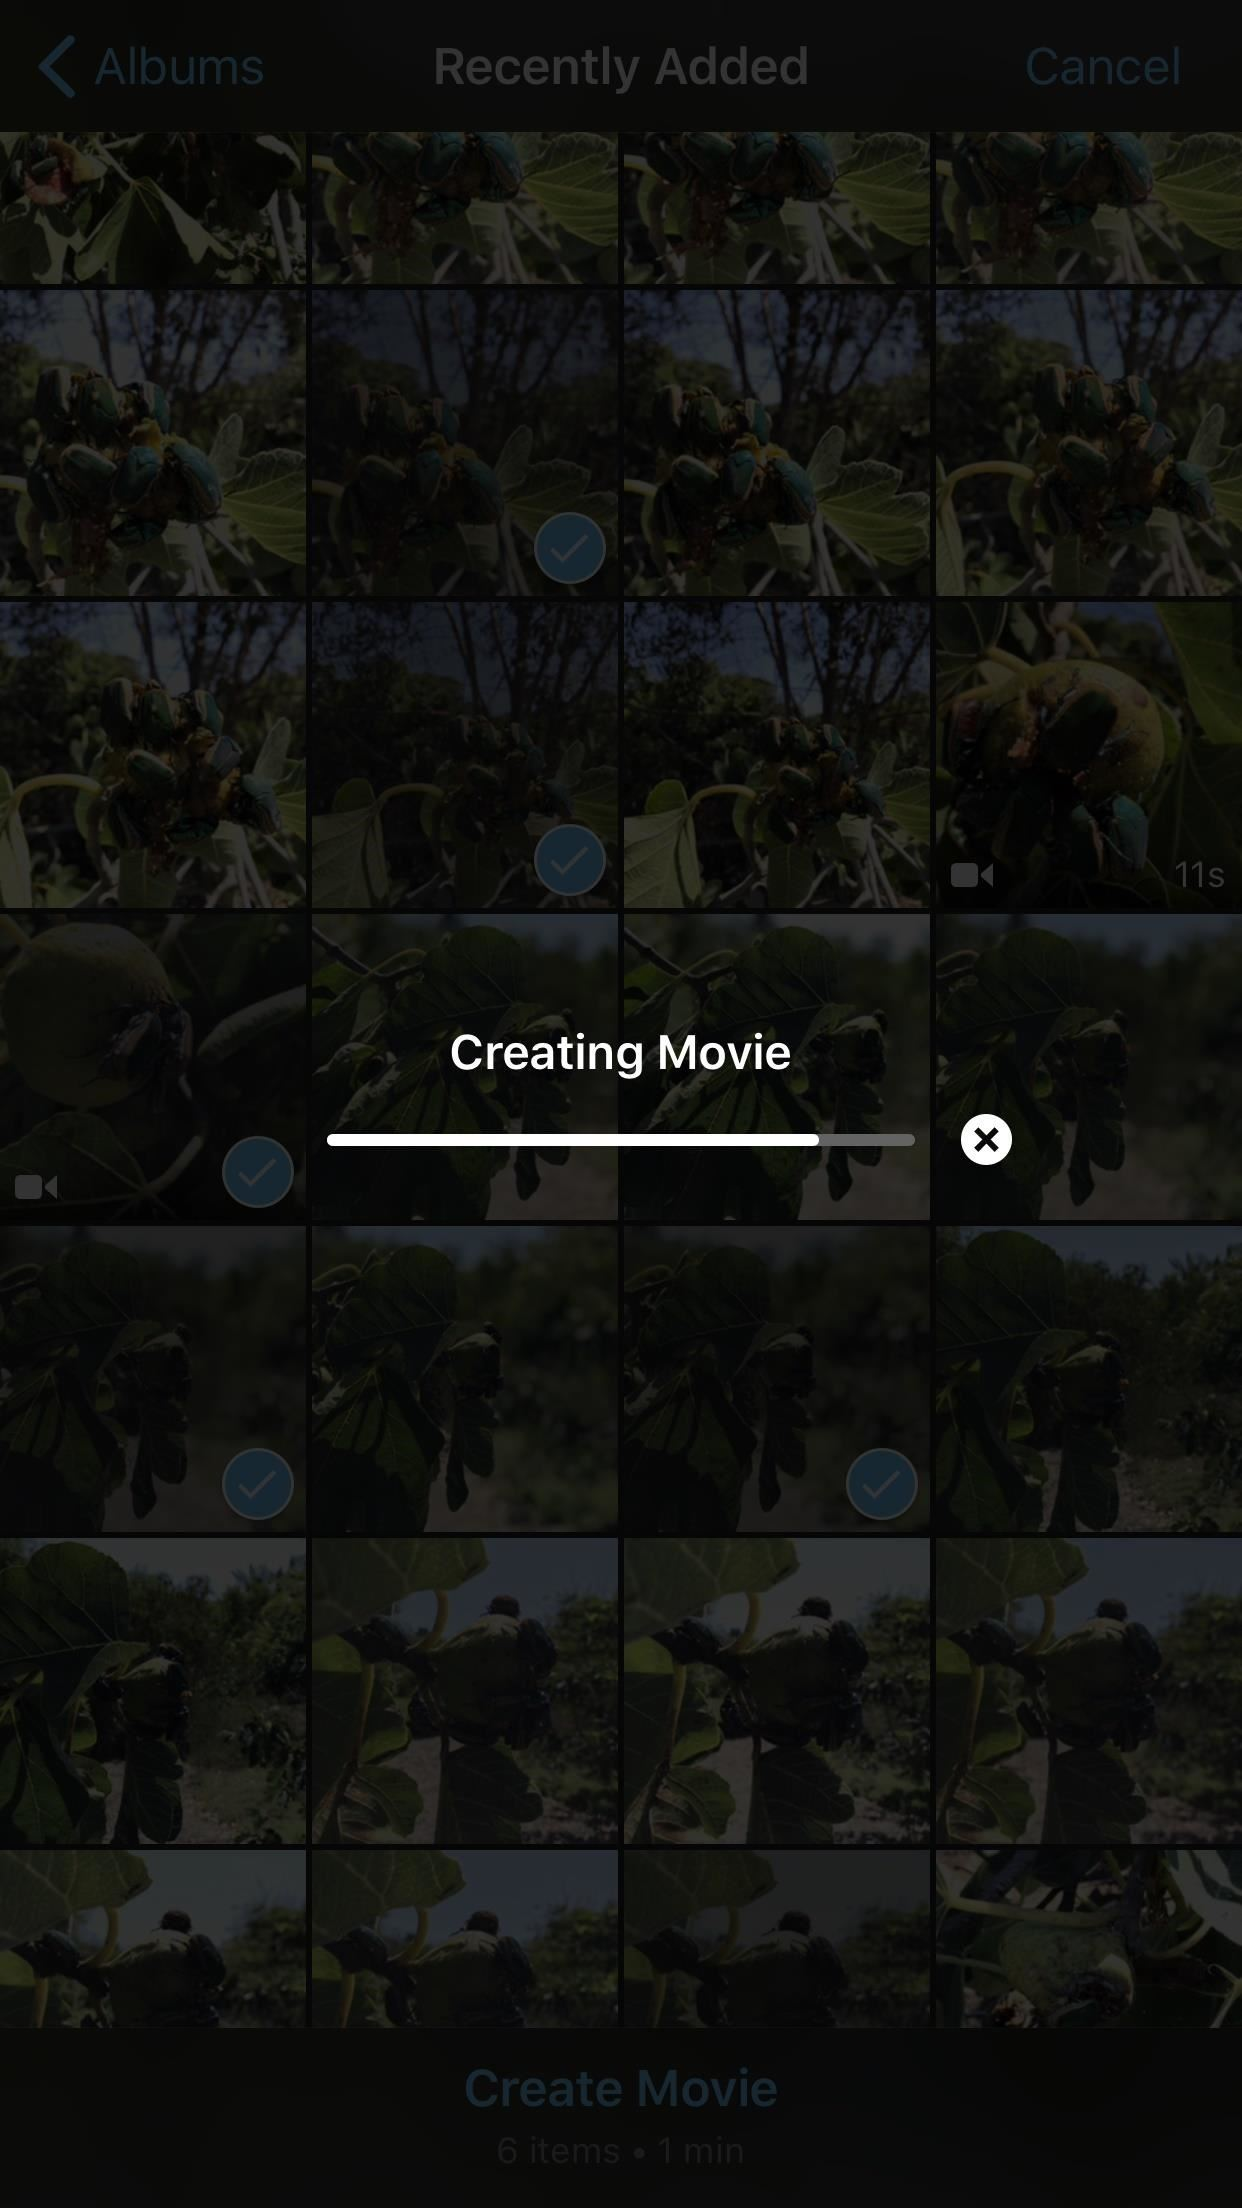 iMovie 101: How to Create a New Movie Project on Your iPhone